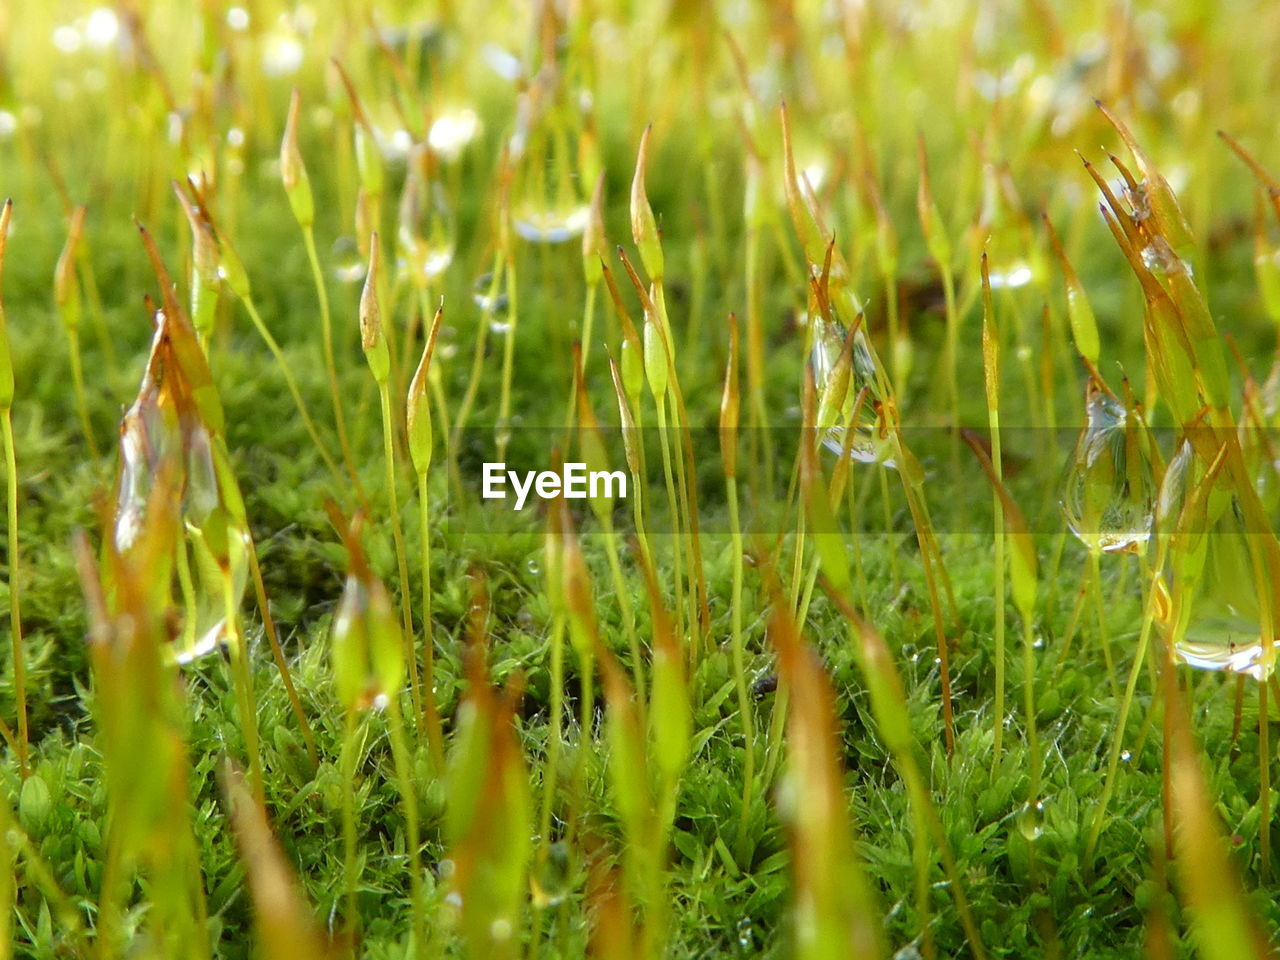 growth, nature, grass, plant, green color, field, outdoors, beauty in nature, close-up, day, freshness, no people, tranquility, fragility